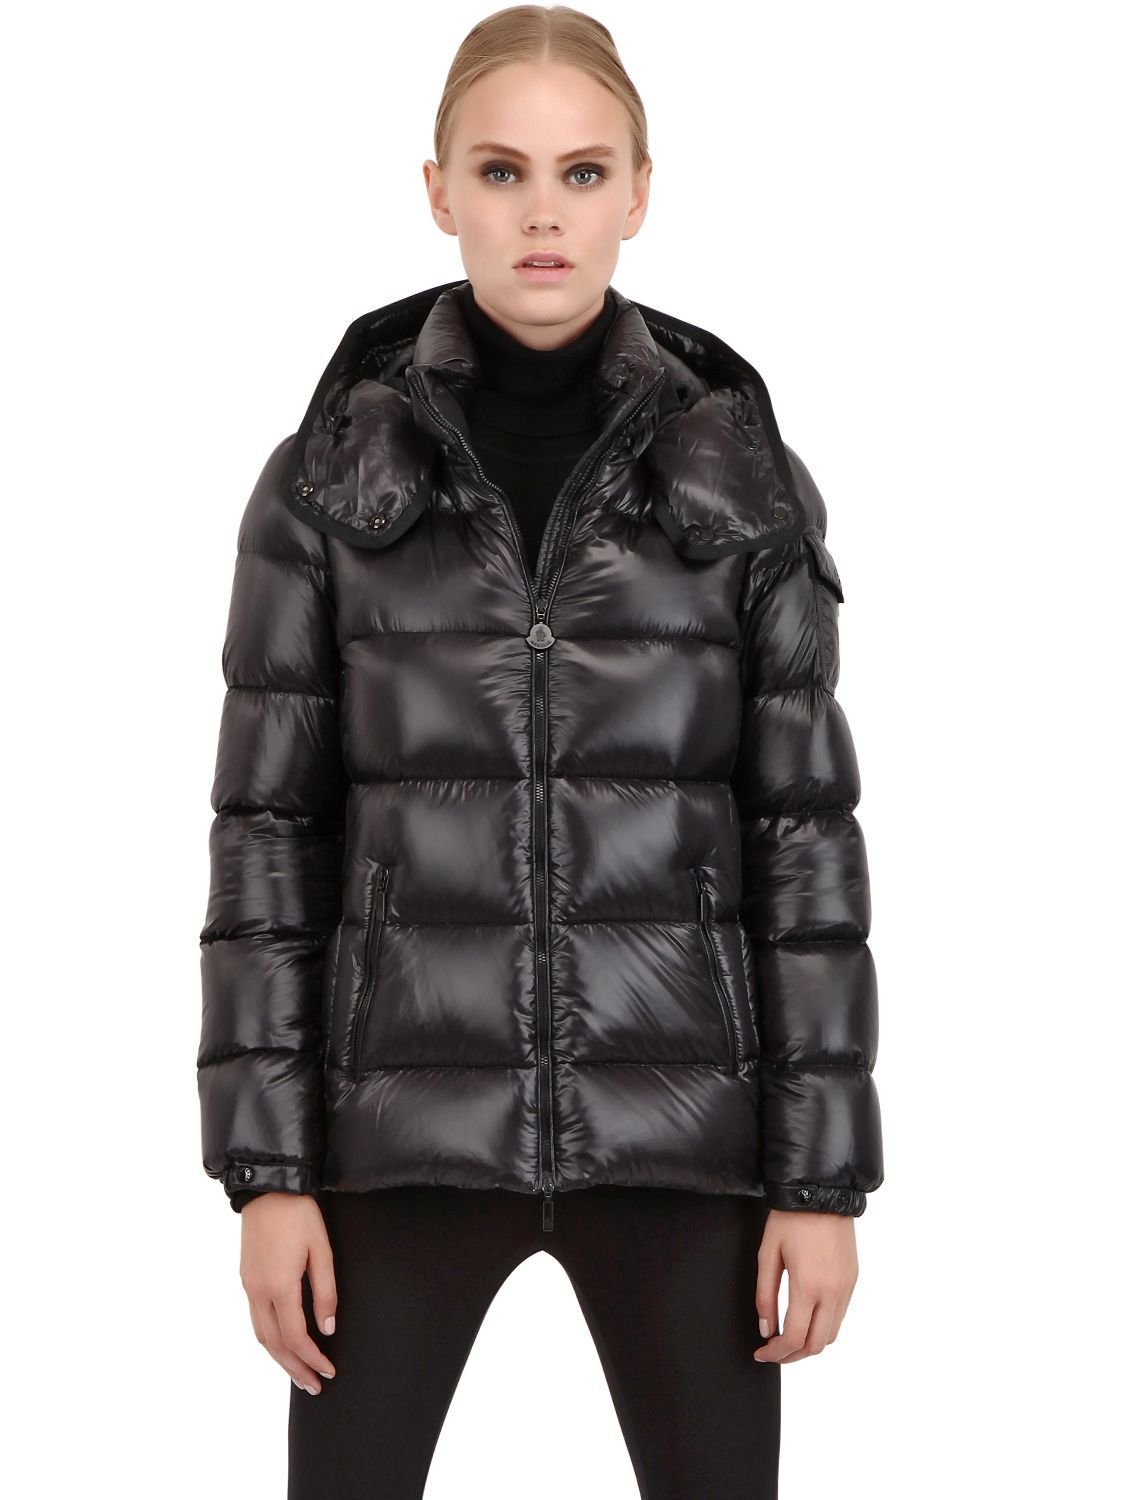 reputable site 445d5 f00cb MONCLER - BADY QUILTED NYLON DOWN JACKET - LUISAVIAROMA ...